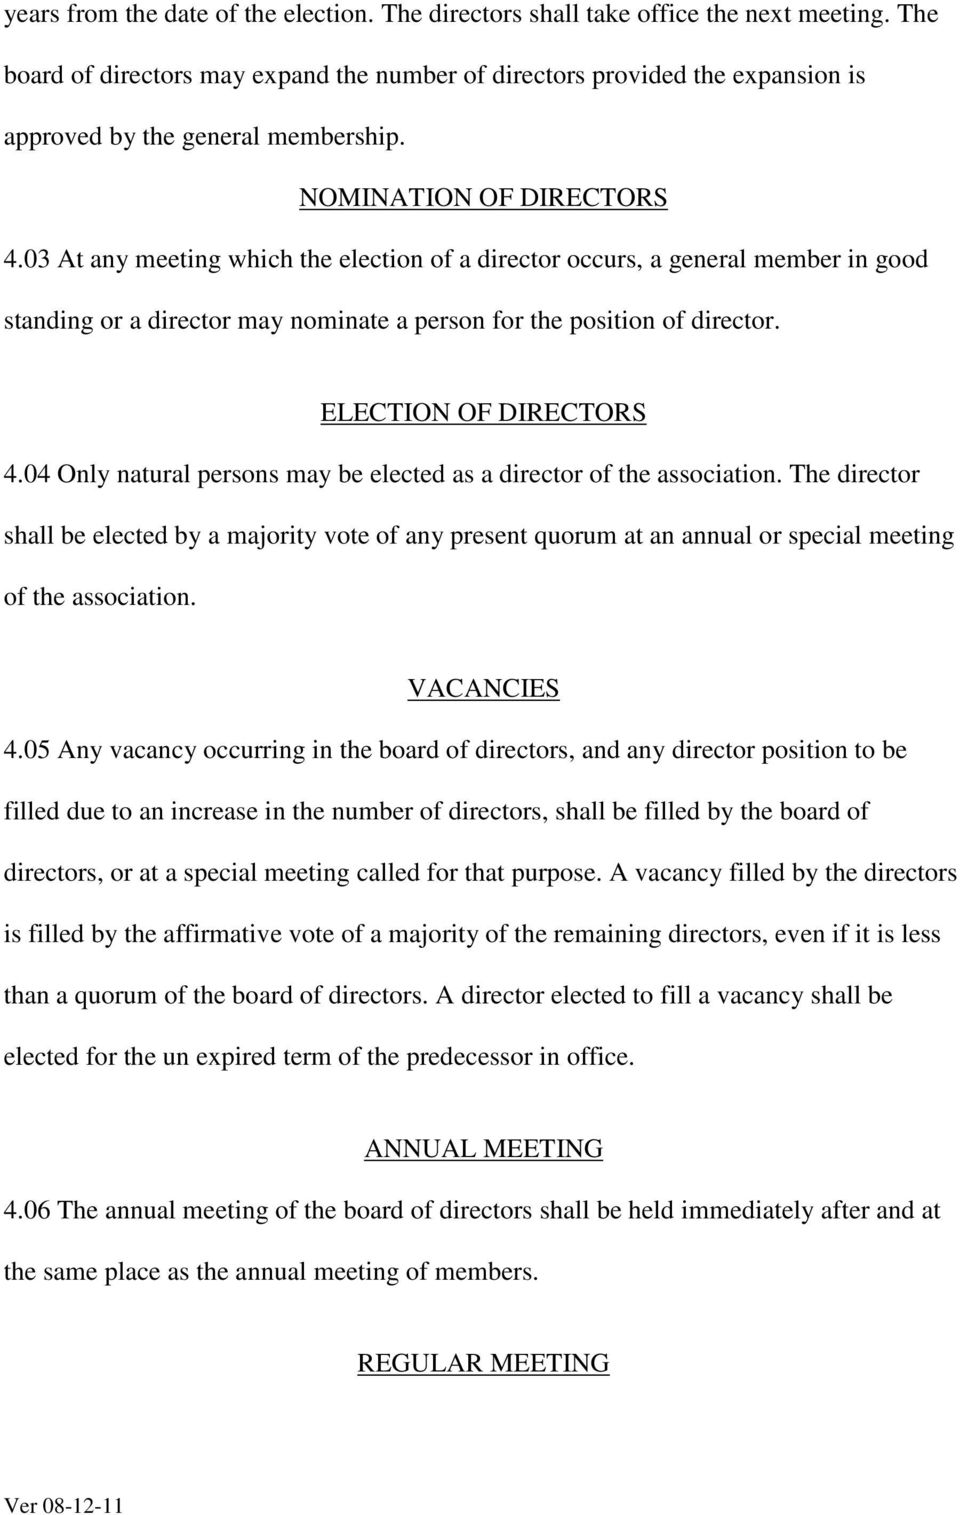 03 At any meeting which the election of a director occurs, a general member in good standing or a director may nominate a person for the position of director. ELECTION OF DIRECTORS 4.